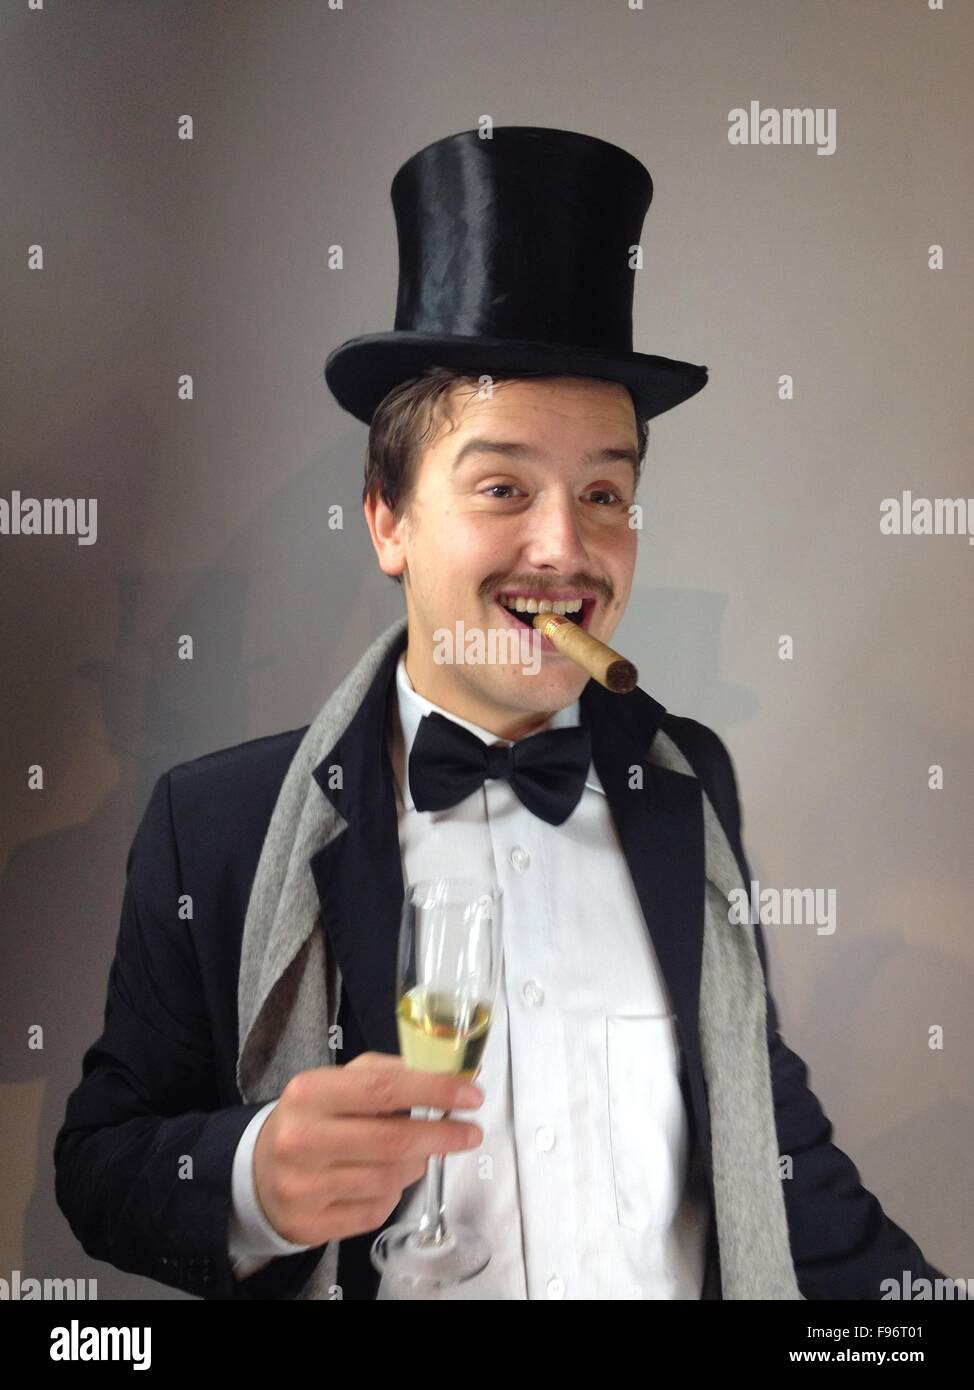 755beb4db4e Man With Top Hat And Cigar Stock Photo  91734273 - Alamy